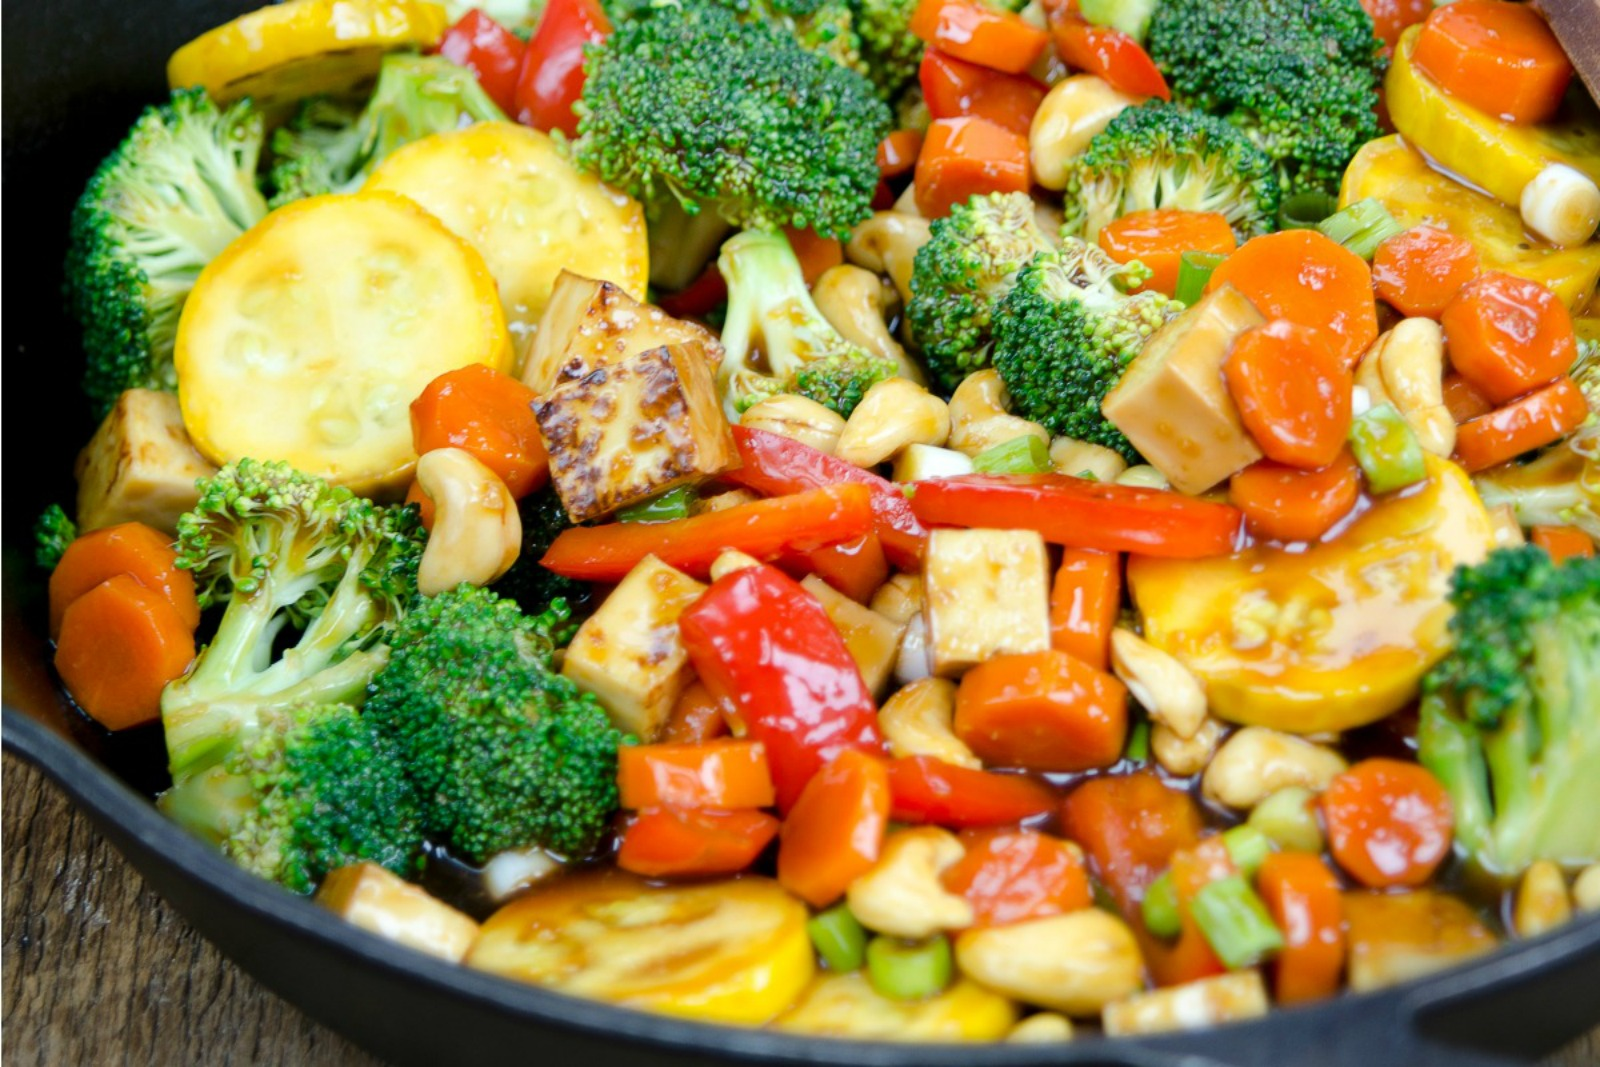 Celebrate Eat Your Vegetables Day (2015) With 15 Veggie Dishes That Rock!